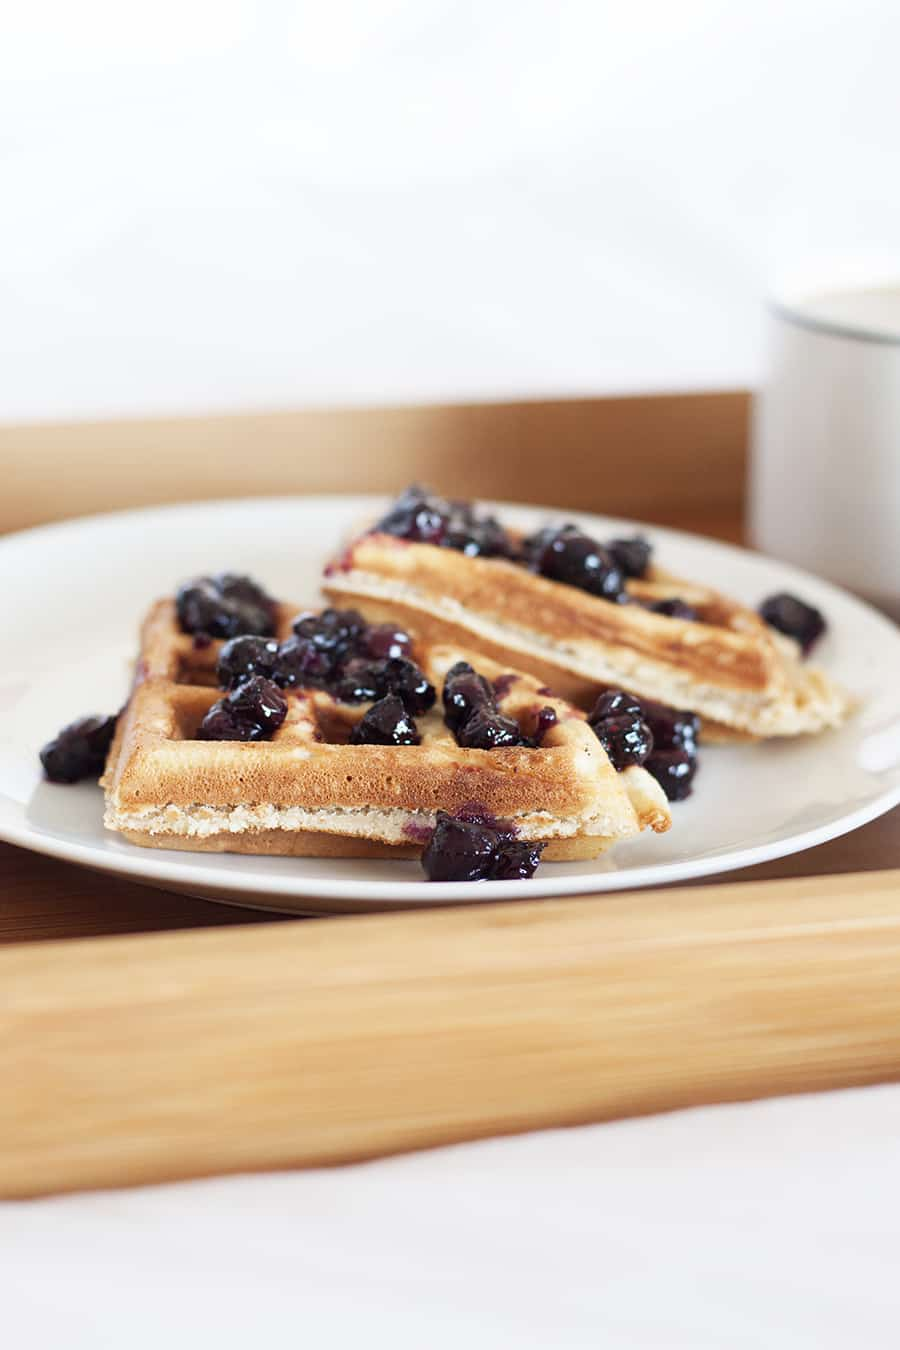 homemade-waffle-recipe-with-sweetened-blueberries-2